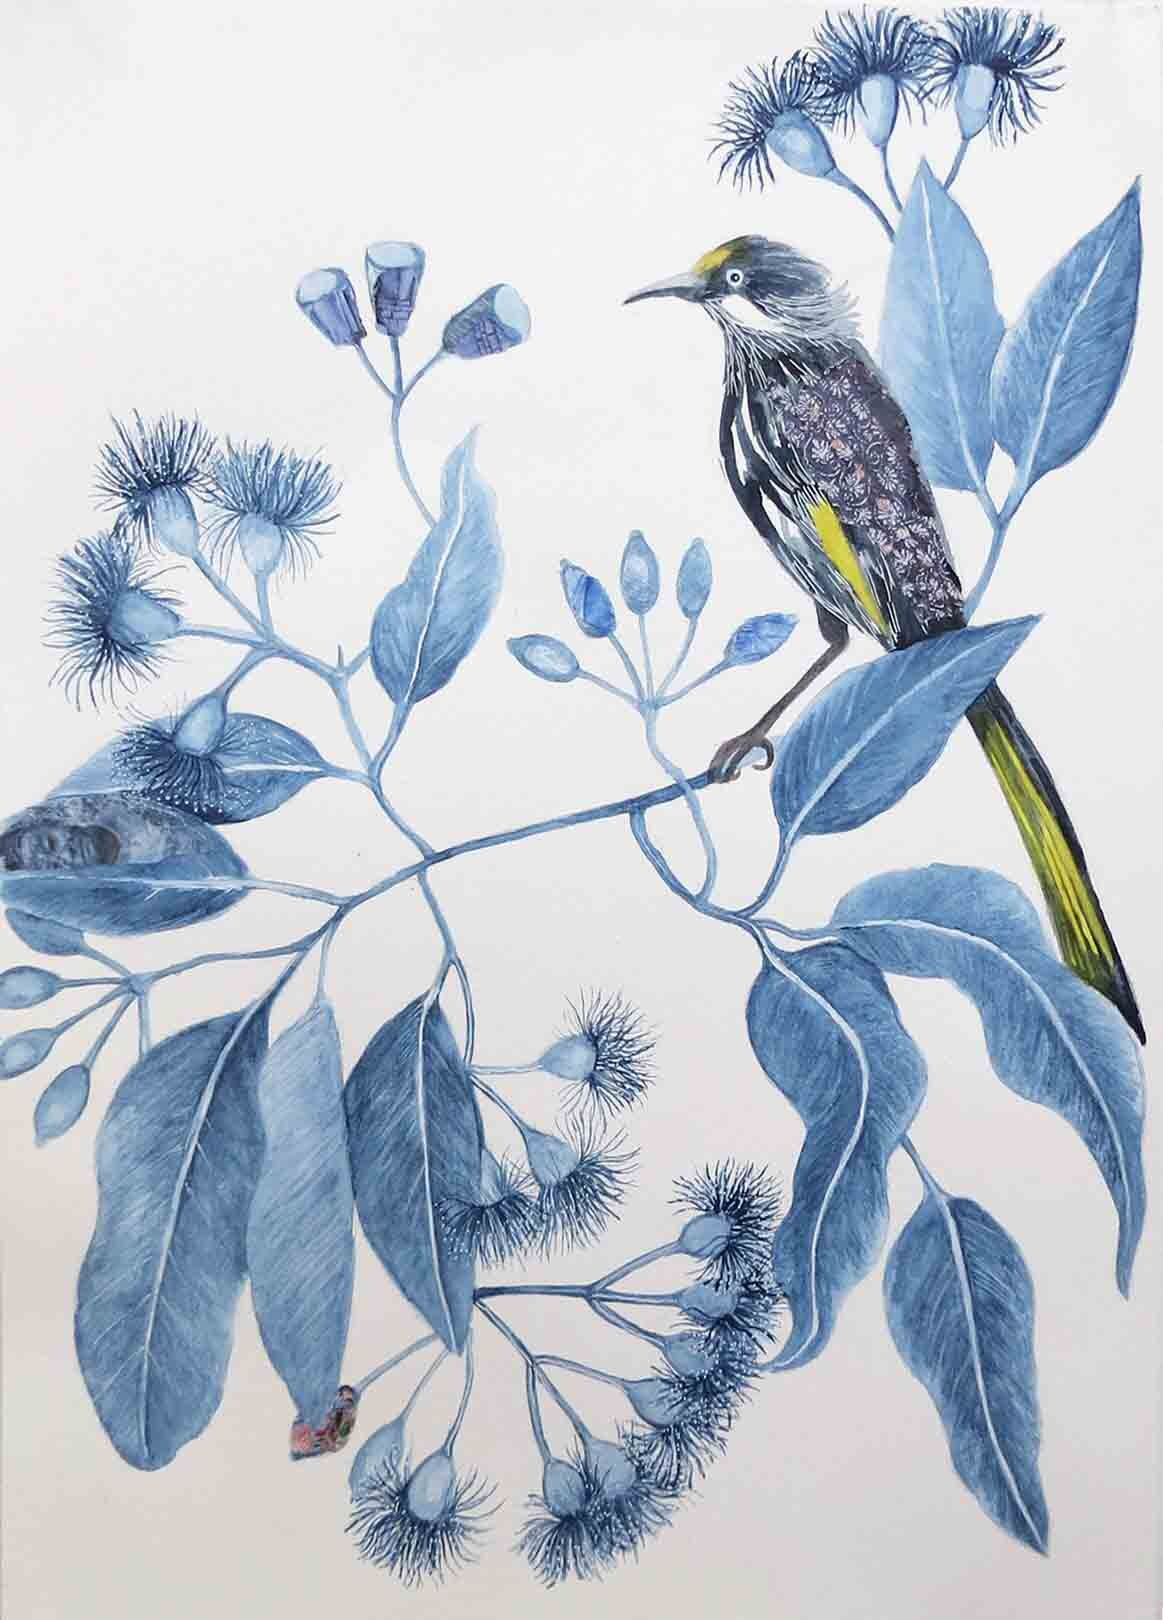 3. Jude Willis, Corymbia ficifolia with New Holland Honeyeater, 2019, watercolour and collage on paper, 42 x 29.5 cm $290